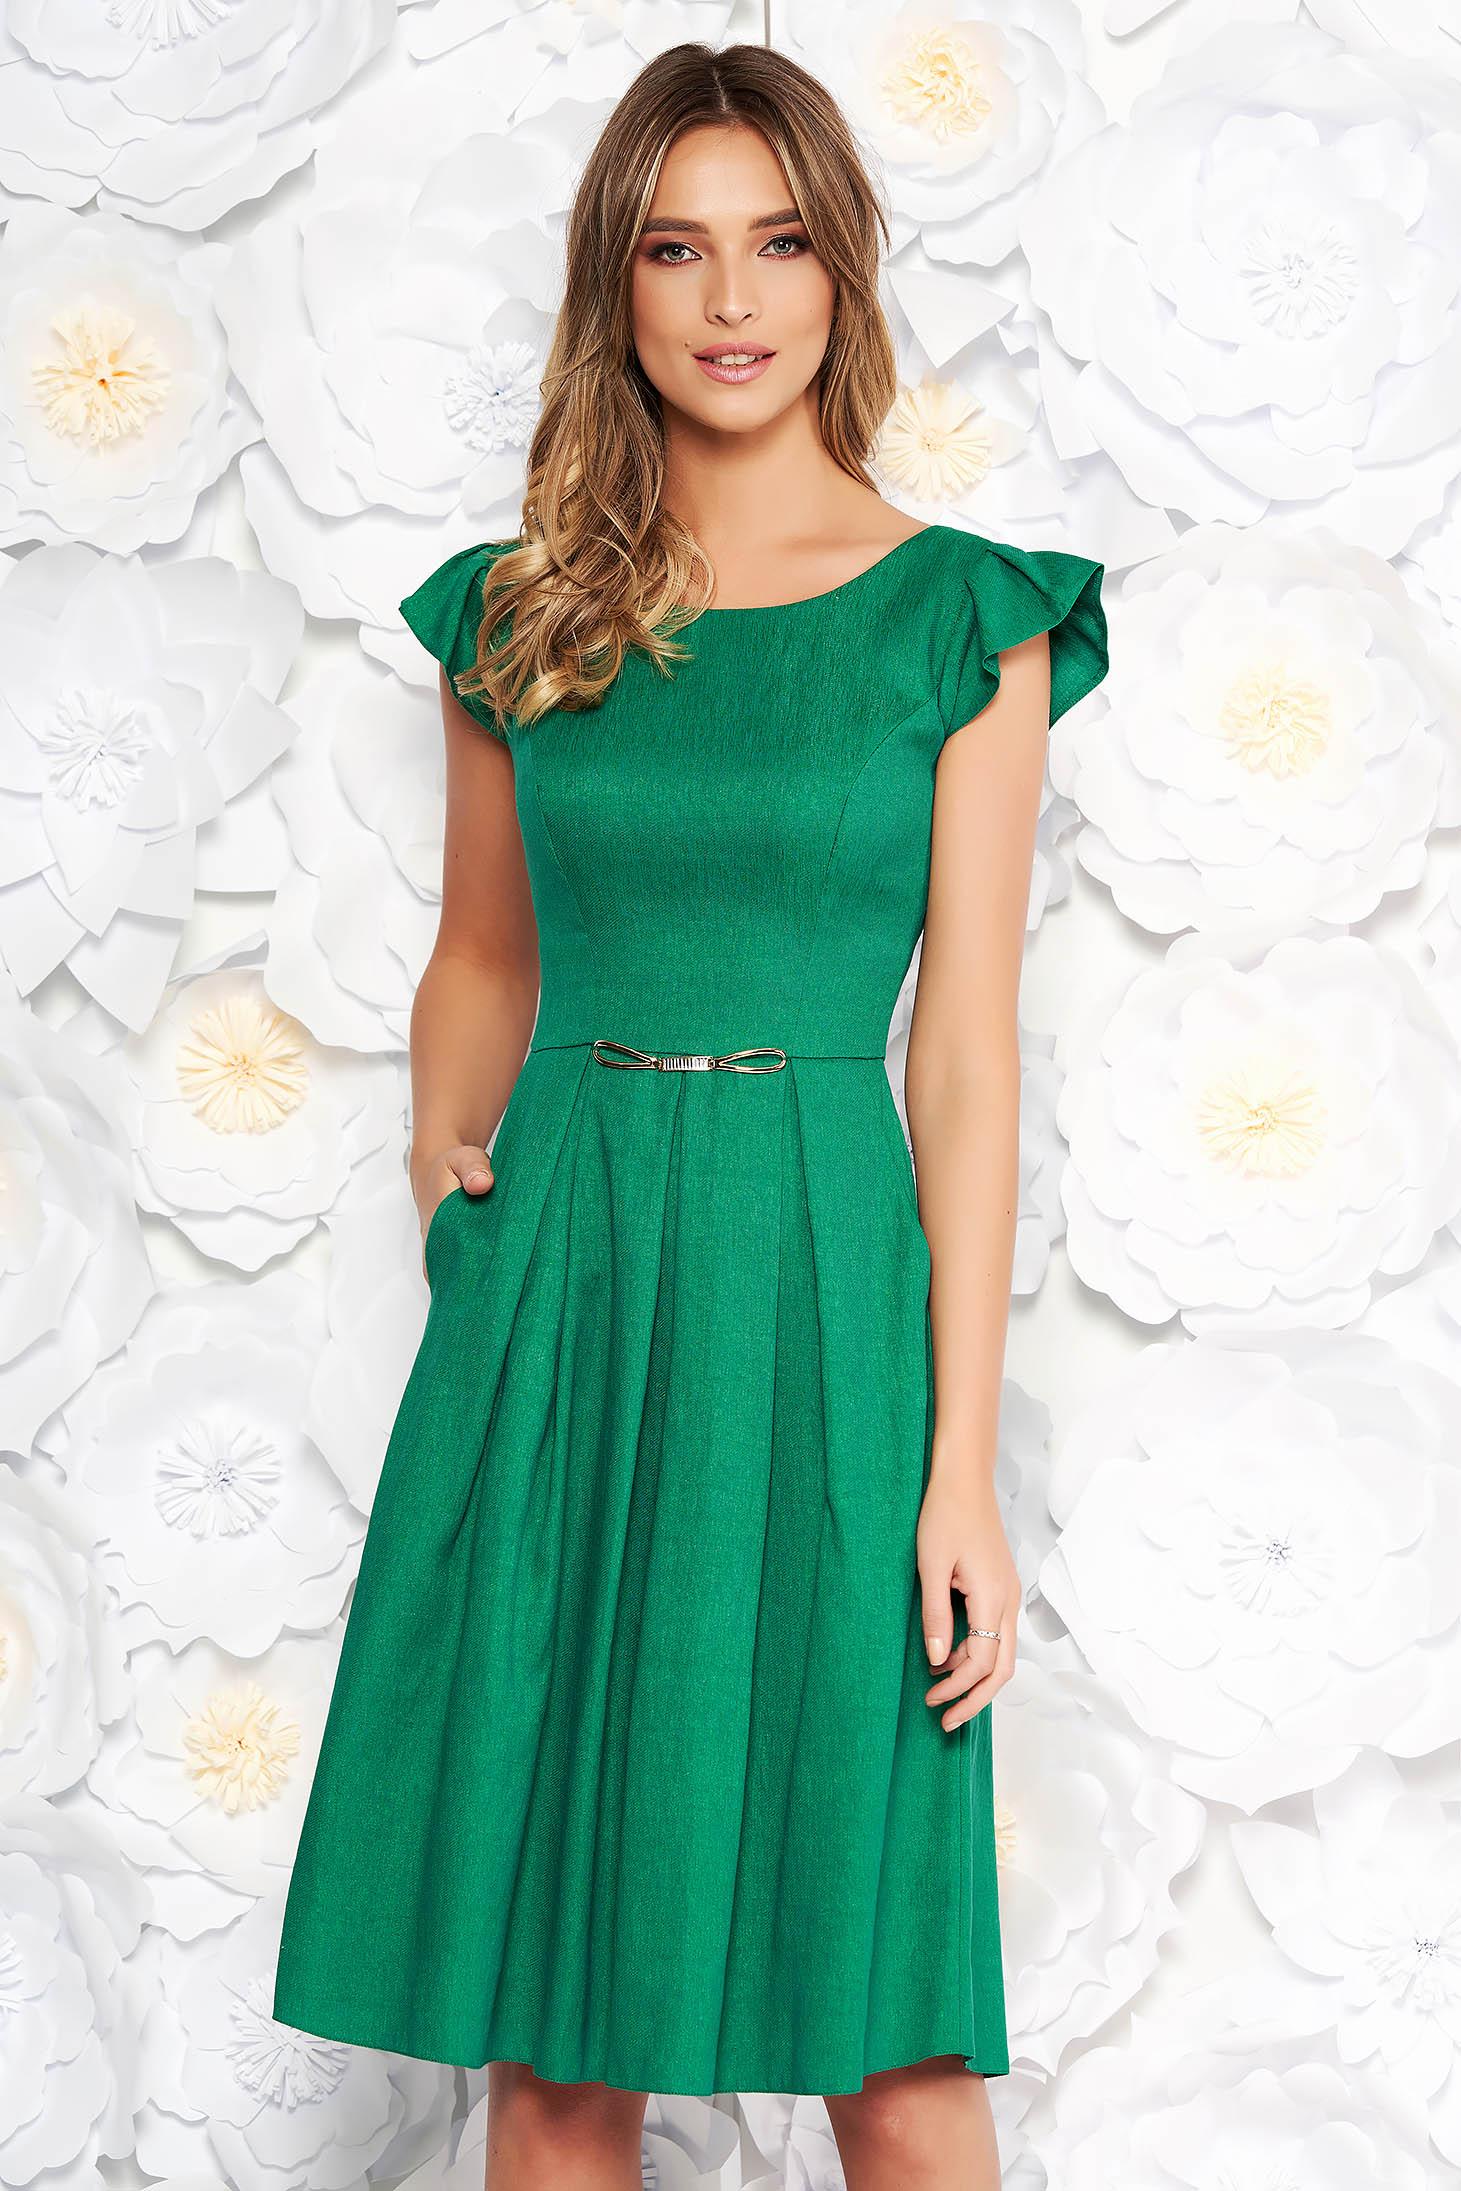 Green daily cloche dress from non elastic fabric with pockets short sleeves